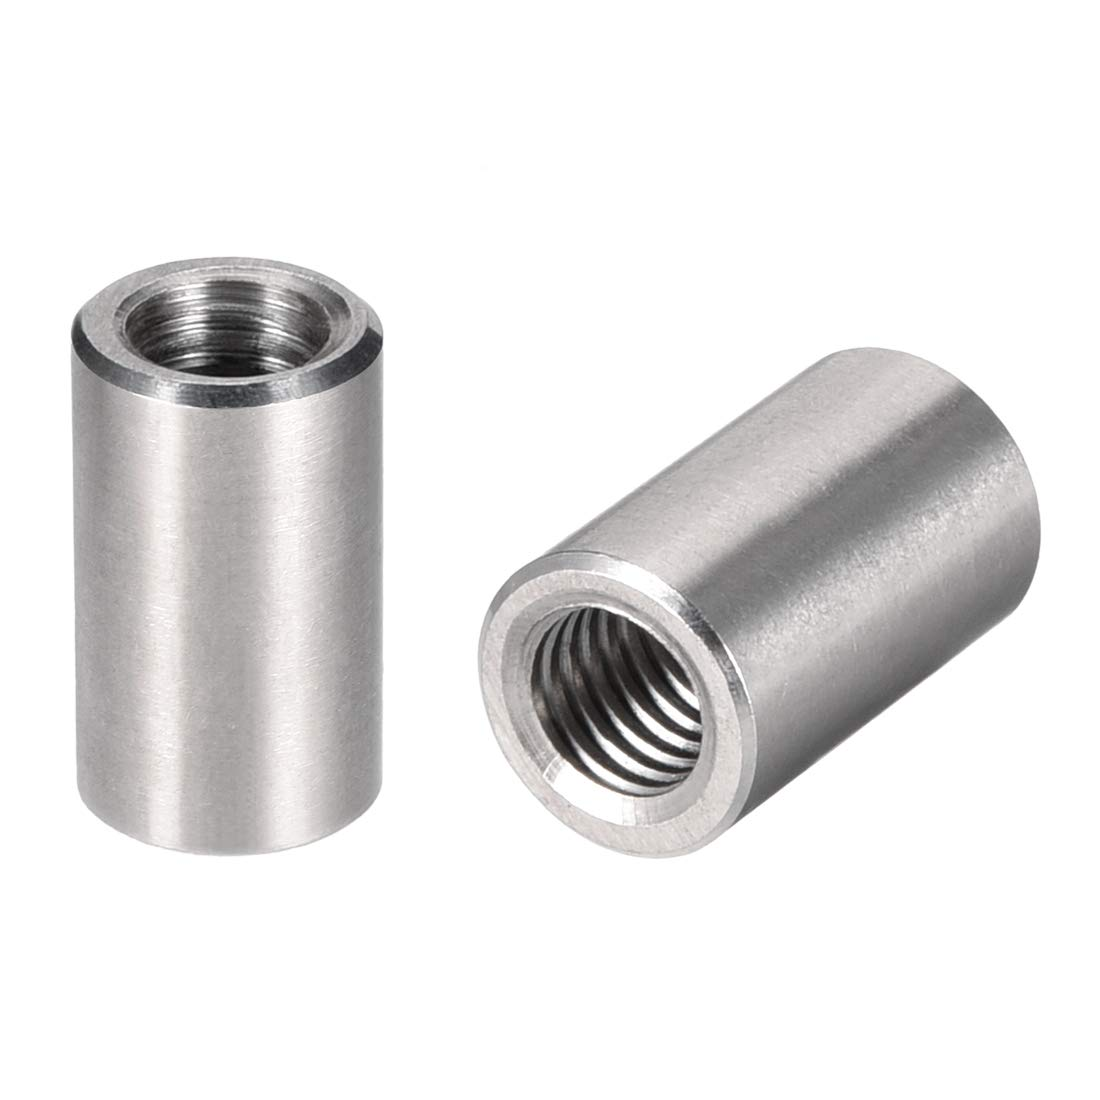 Uxcell a16050300ux0583 M8 304 Stainless Steel Threaded Sleeve Rod Bar Stud Round Connector Nuts Joiner 5pcs